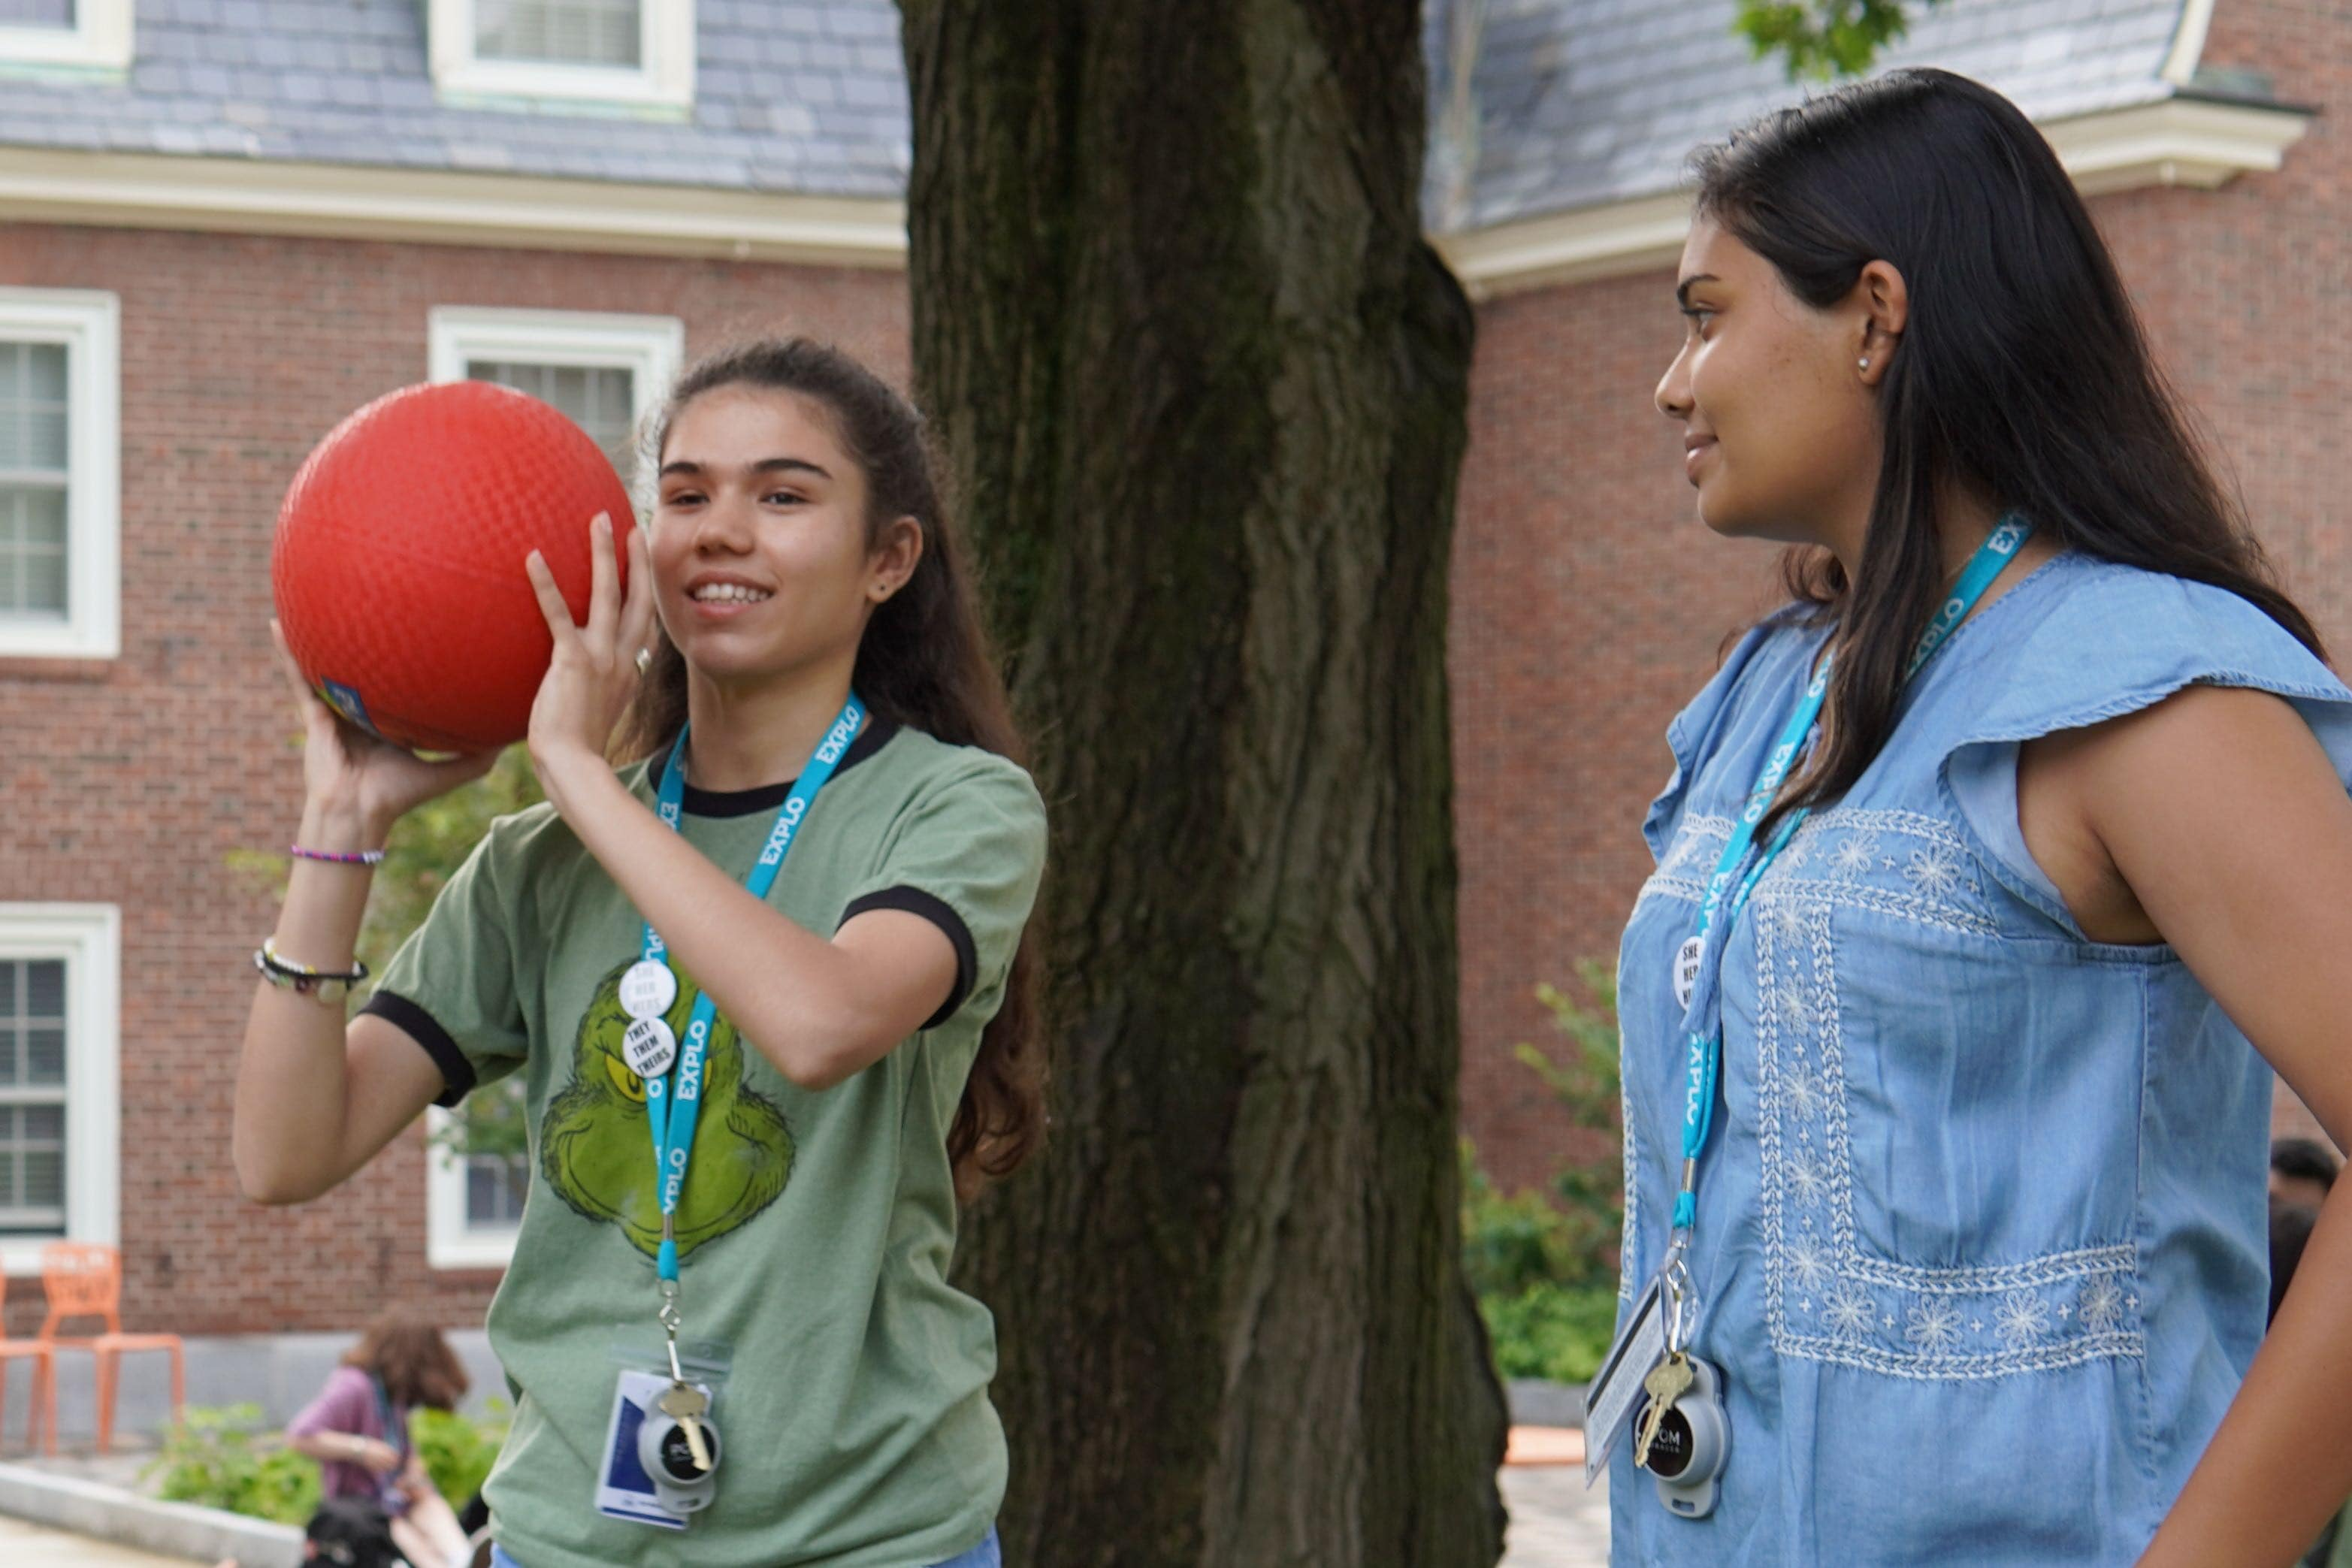 A student prepares to throw a red rubber ball as they stand in a circle next to their peers.